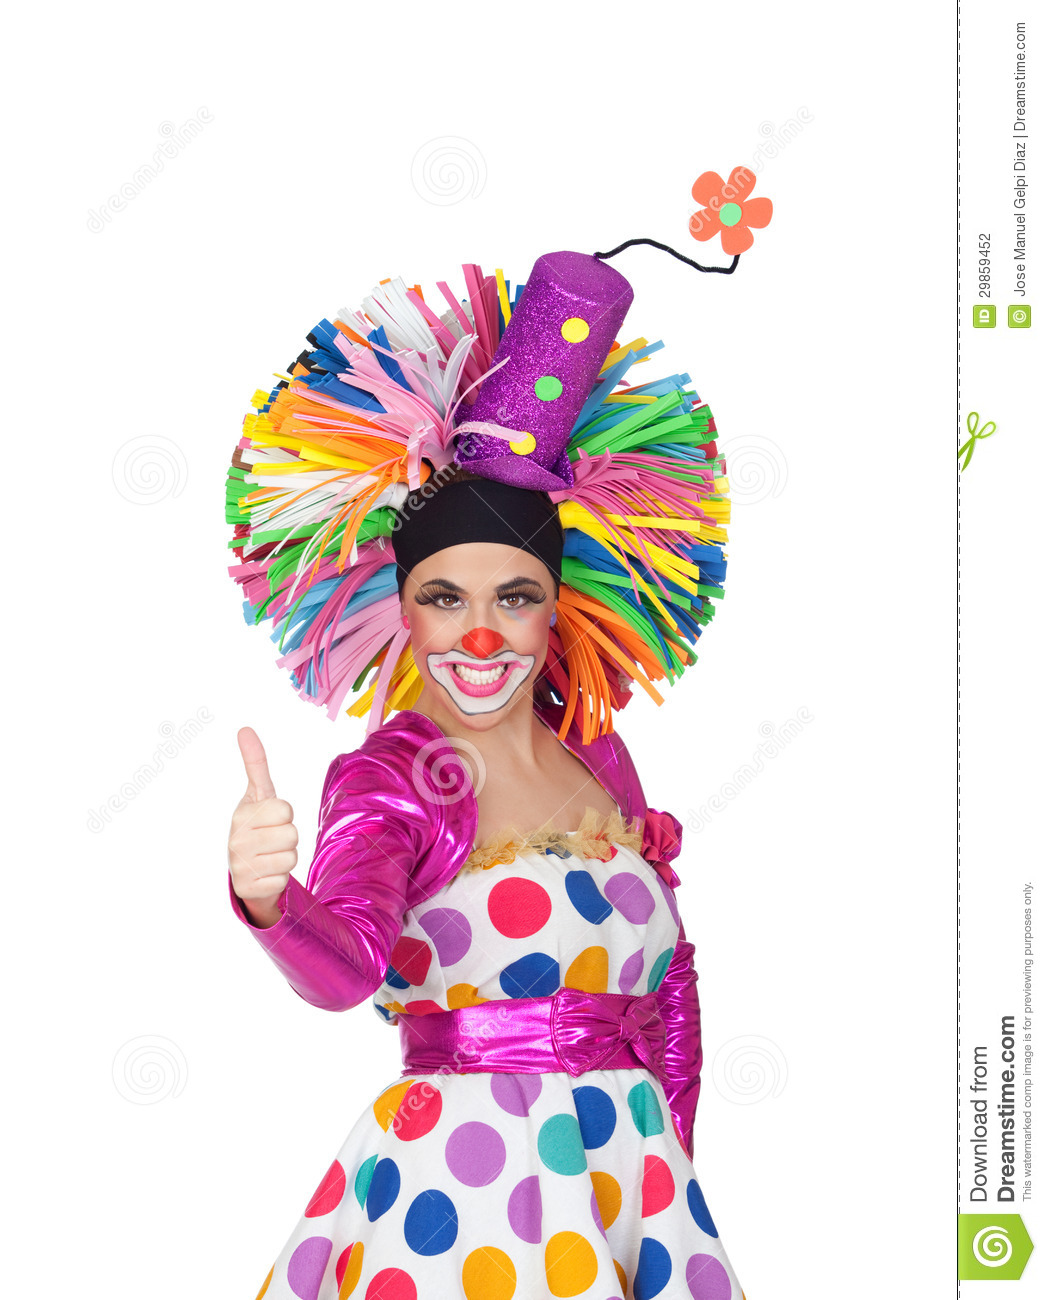 clown drle de fille avec une grande perruque colore disant correct - Perruque Colore